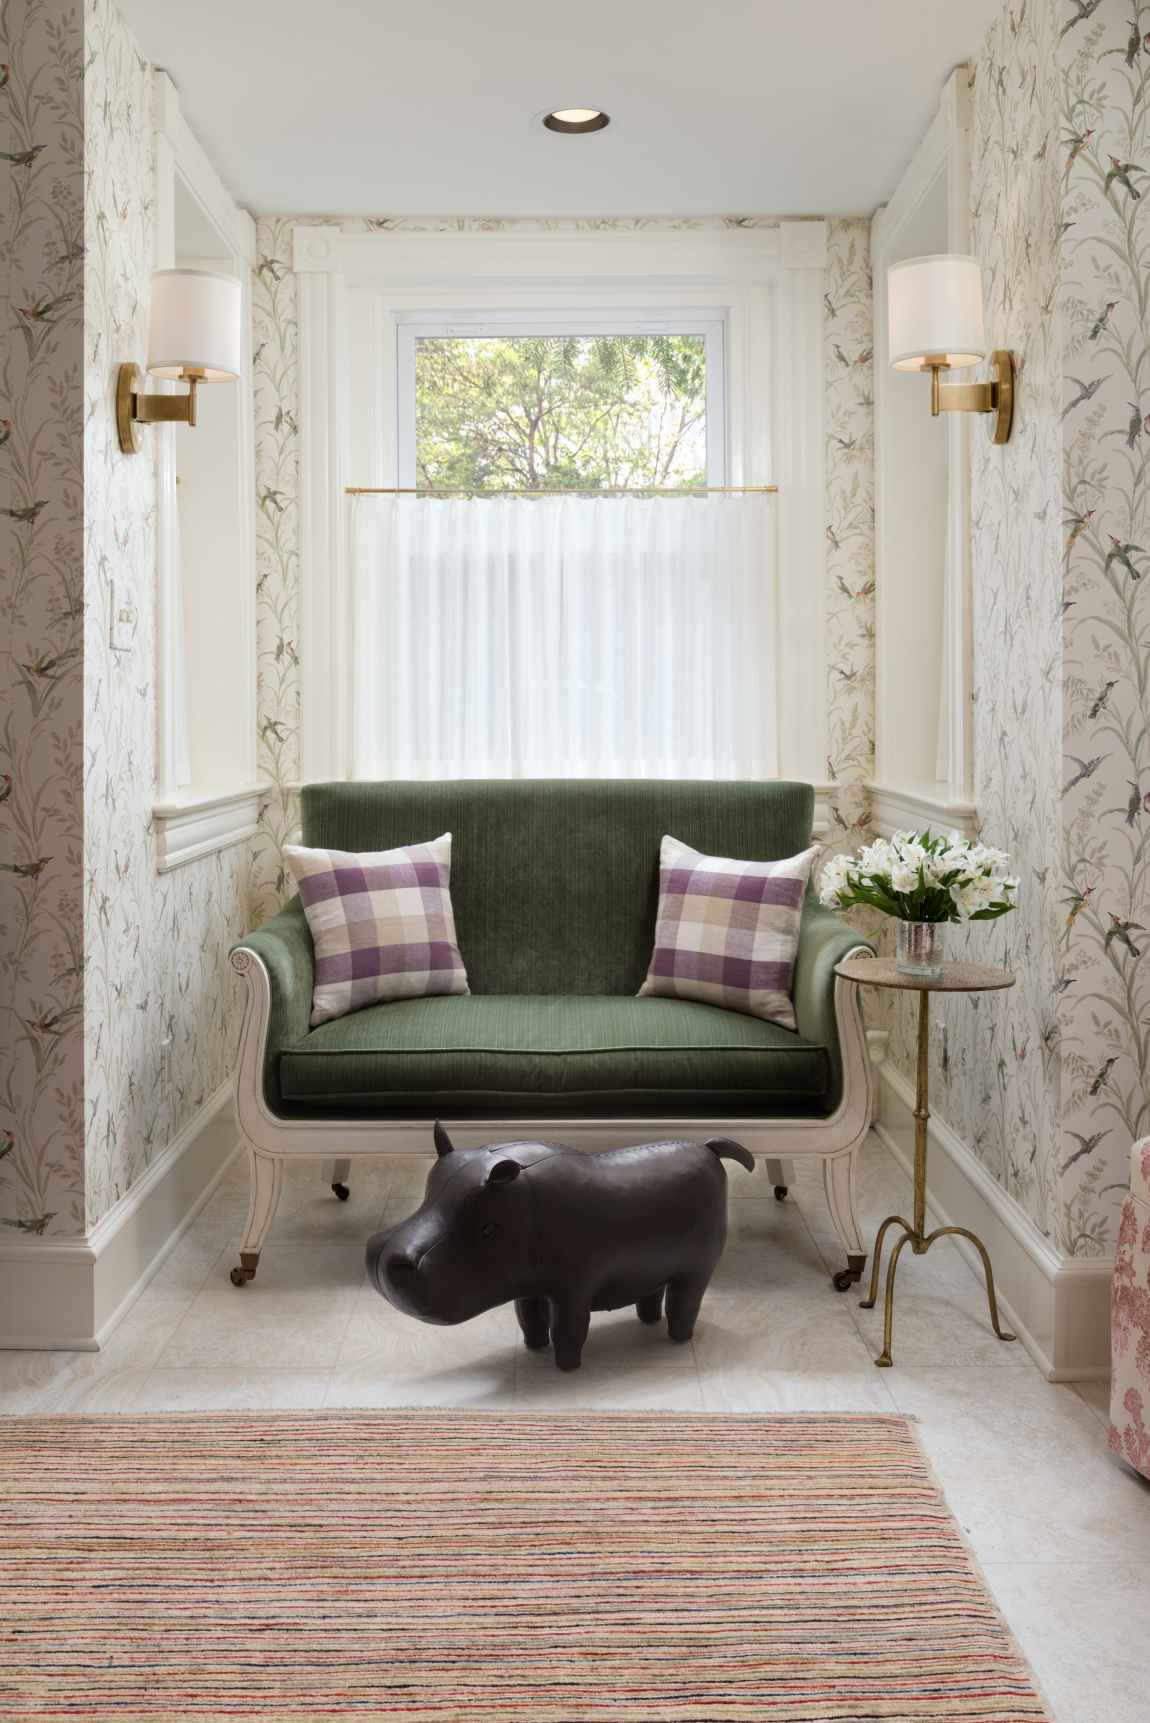 Reading nook with interesting side table and hippo sculpture.